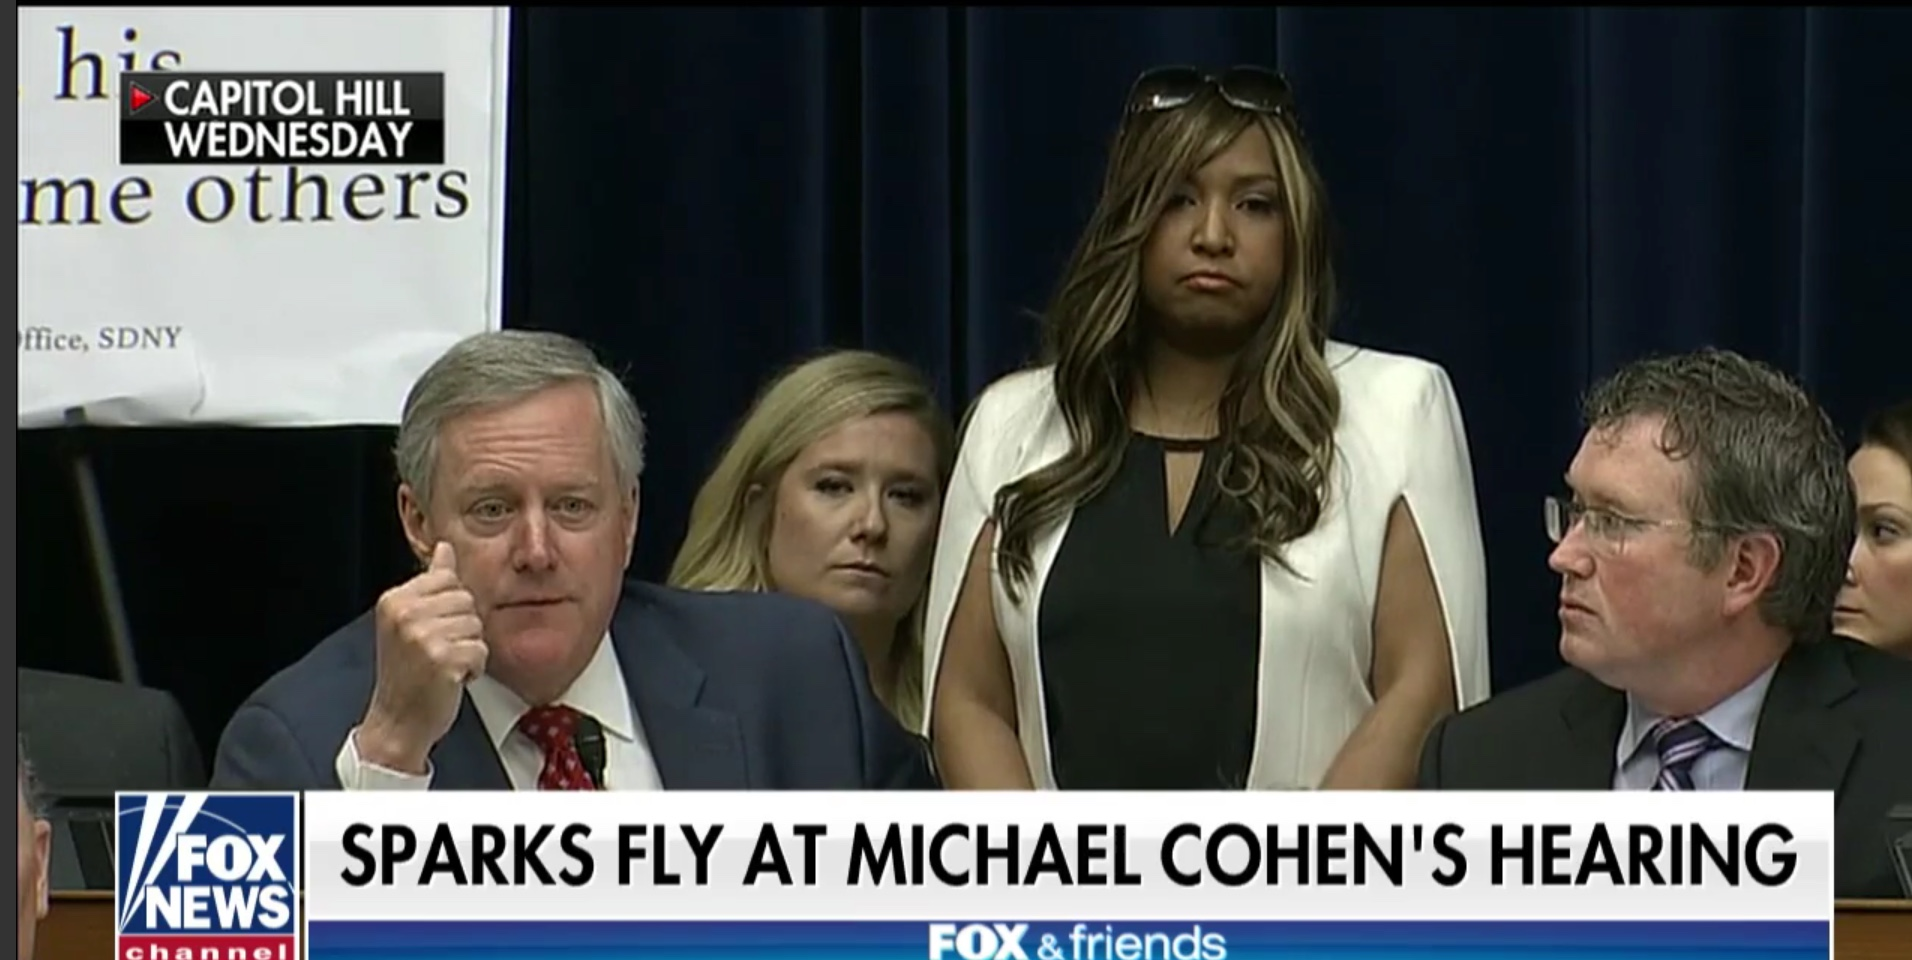 HUD official Lynne Patton stands behind Rep. Mark Meadows during testimony of Michael Cohen to Congress, Feb. 27, 2019. Fox News screenshot.